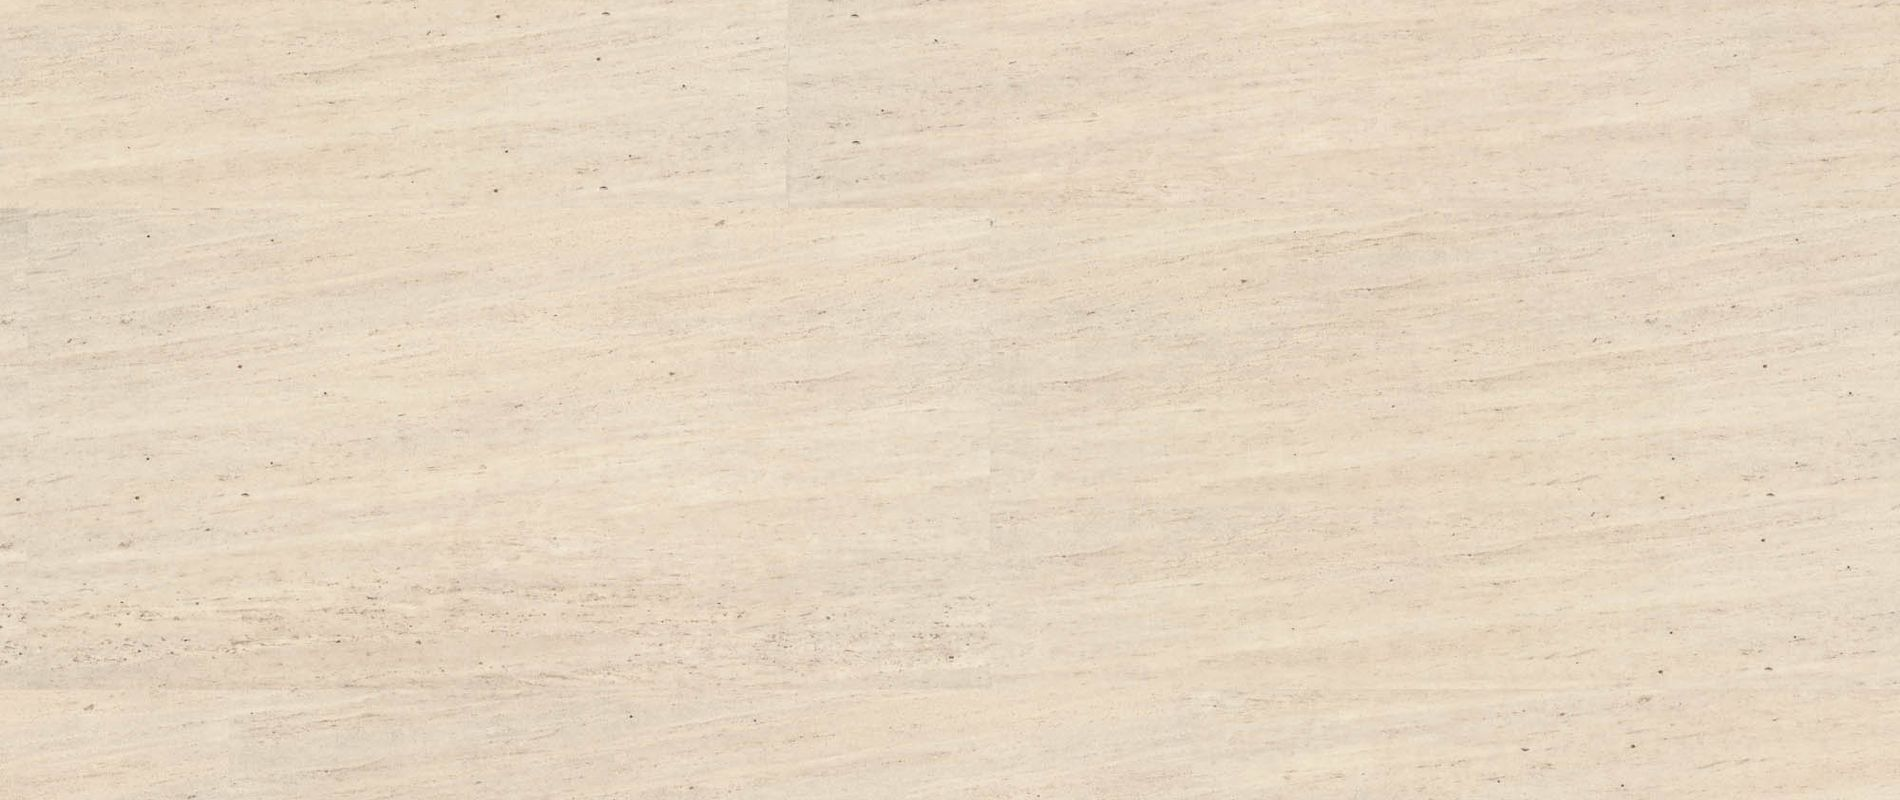 csm Draufsicht PL106C Timeless Travertine 52dfd8d084